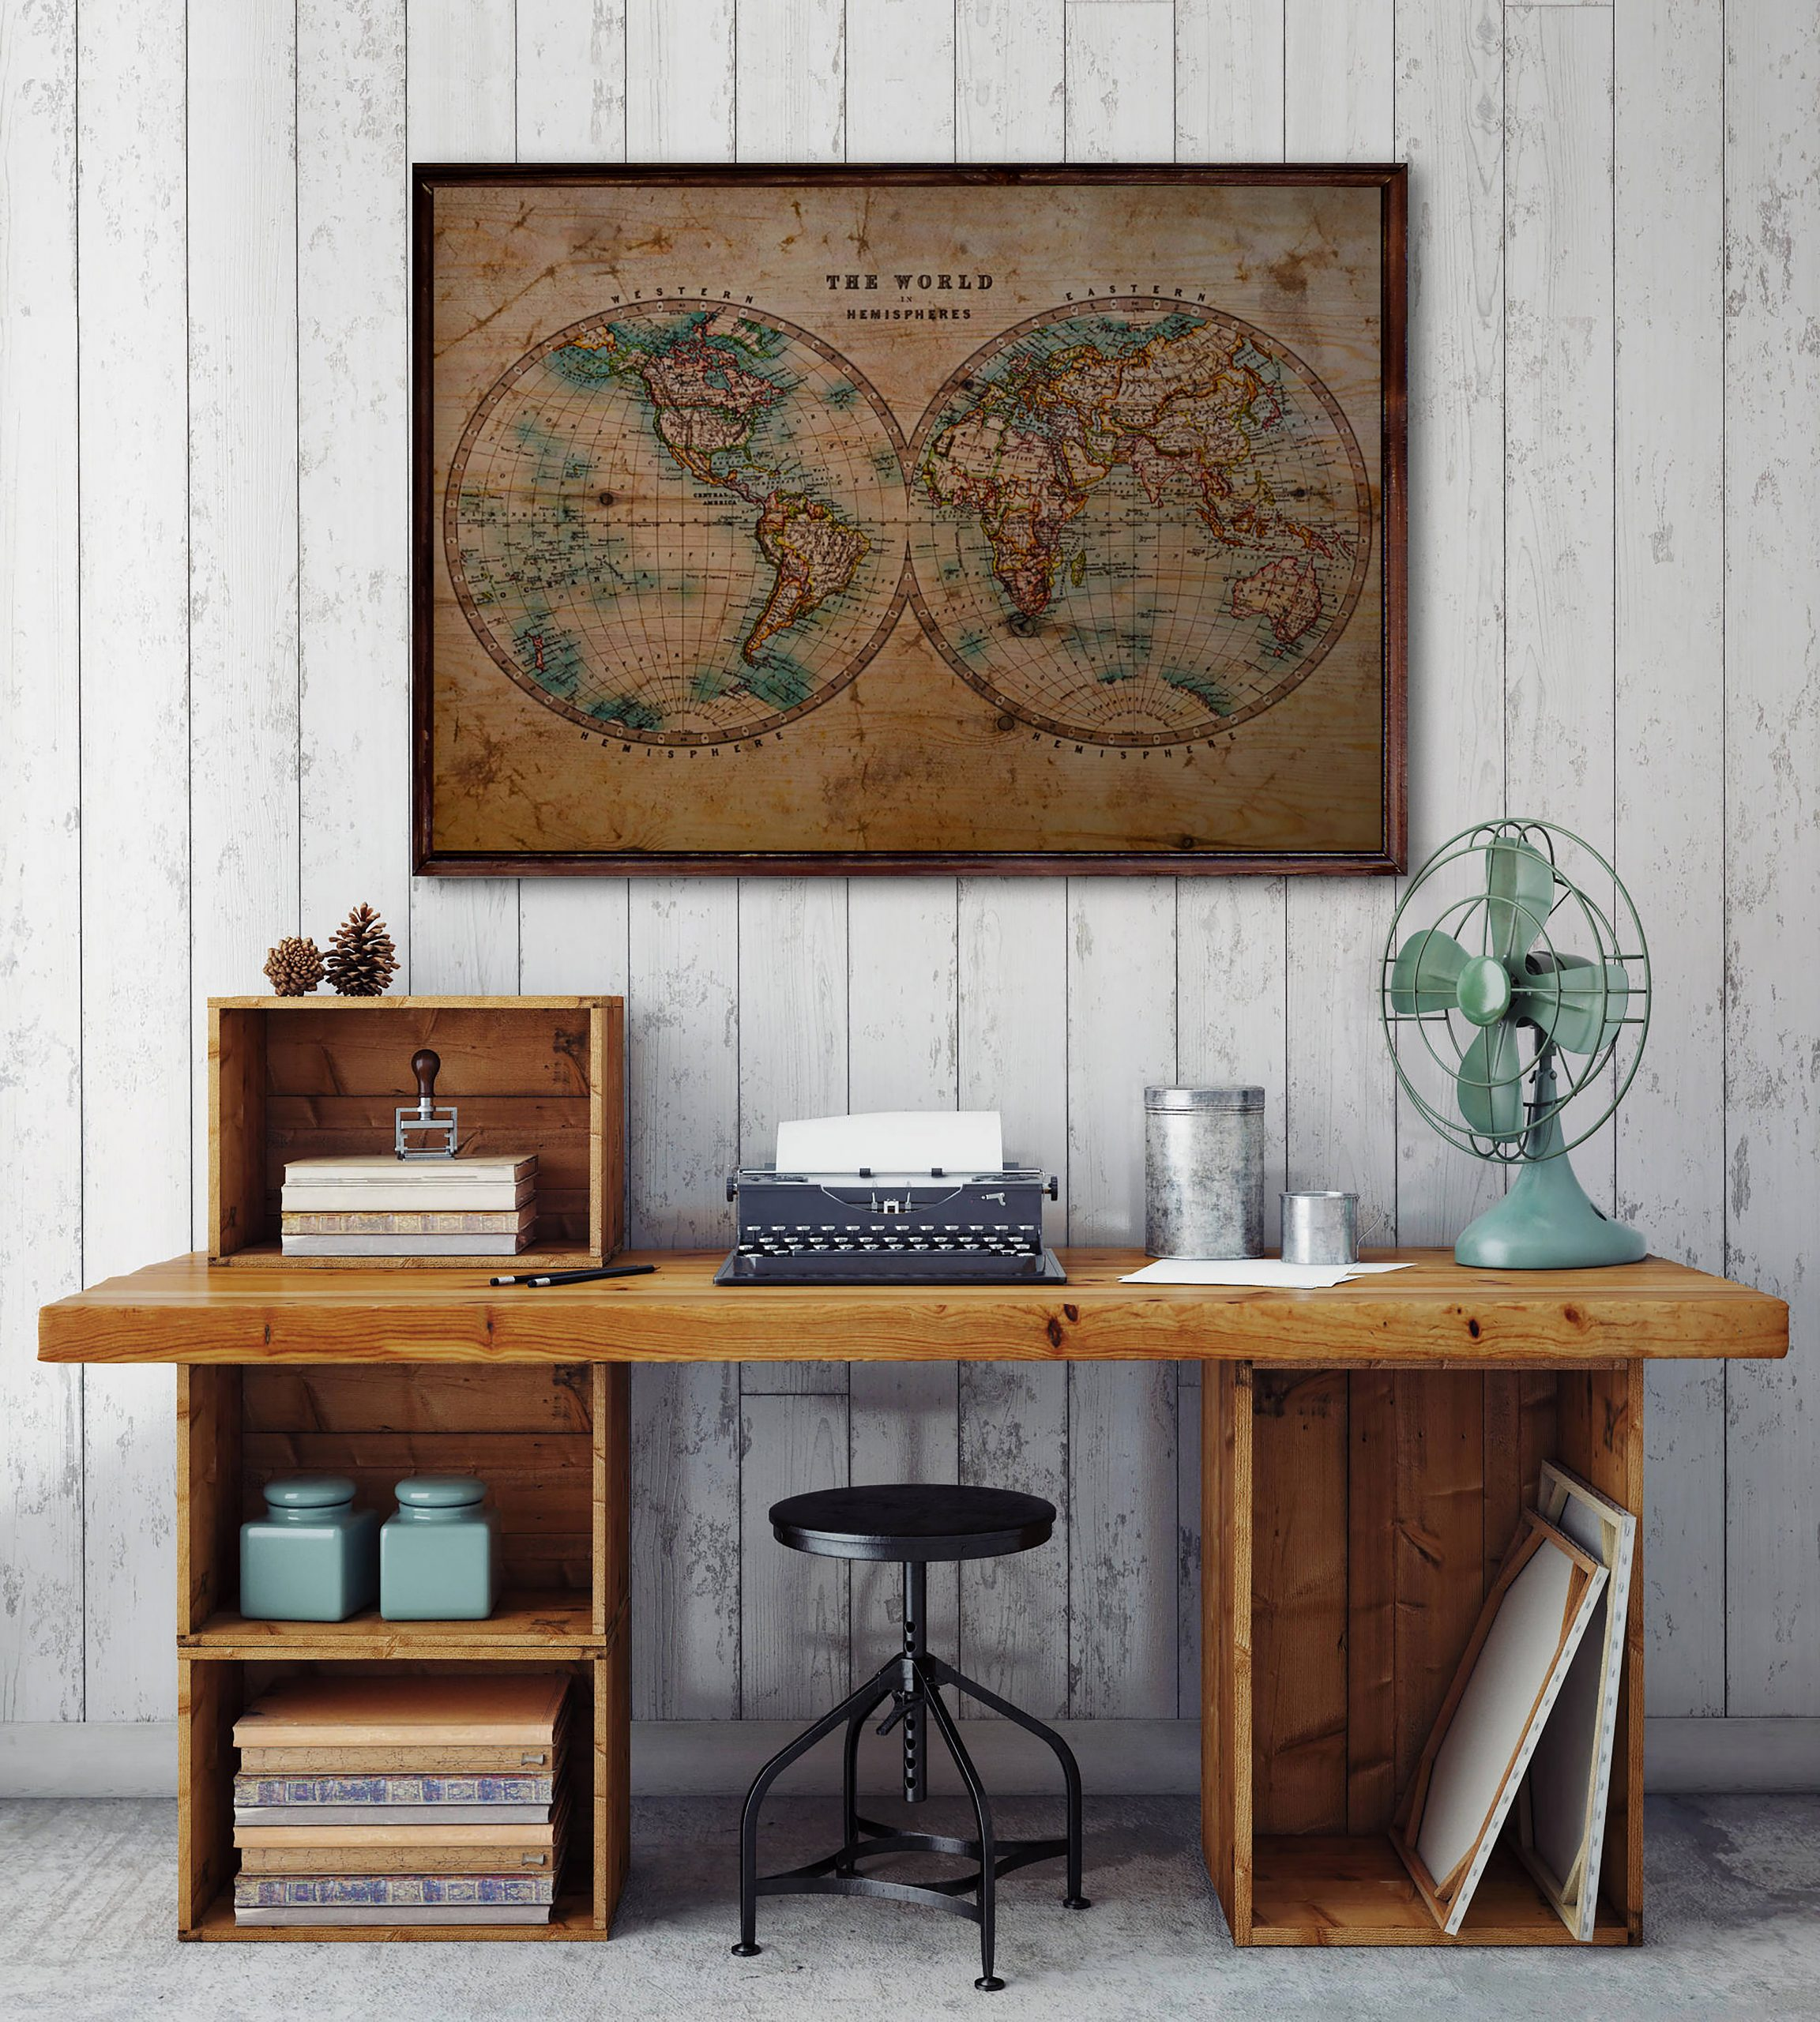 Vintage World Map Ahşap Tablo